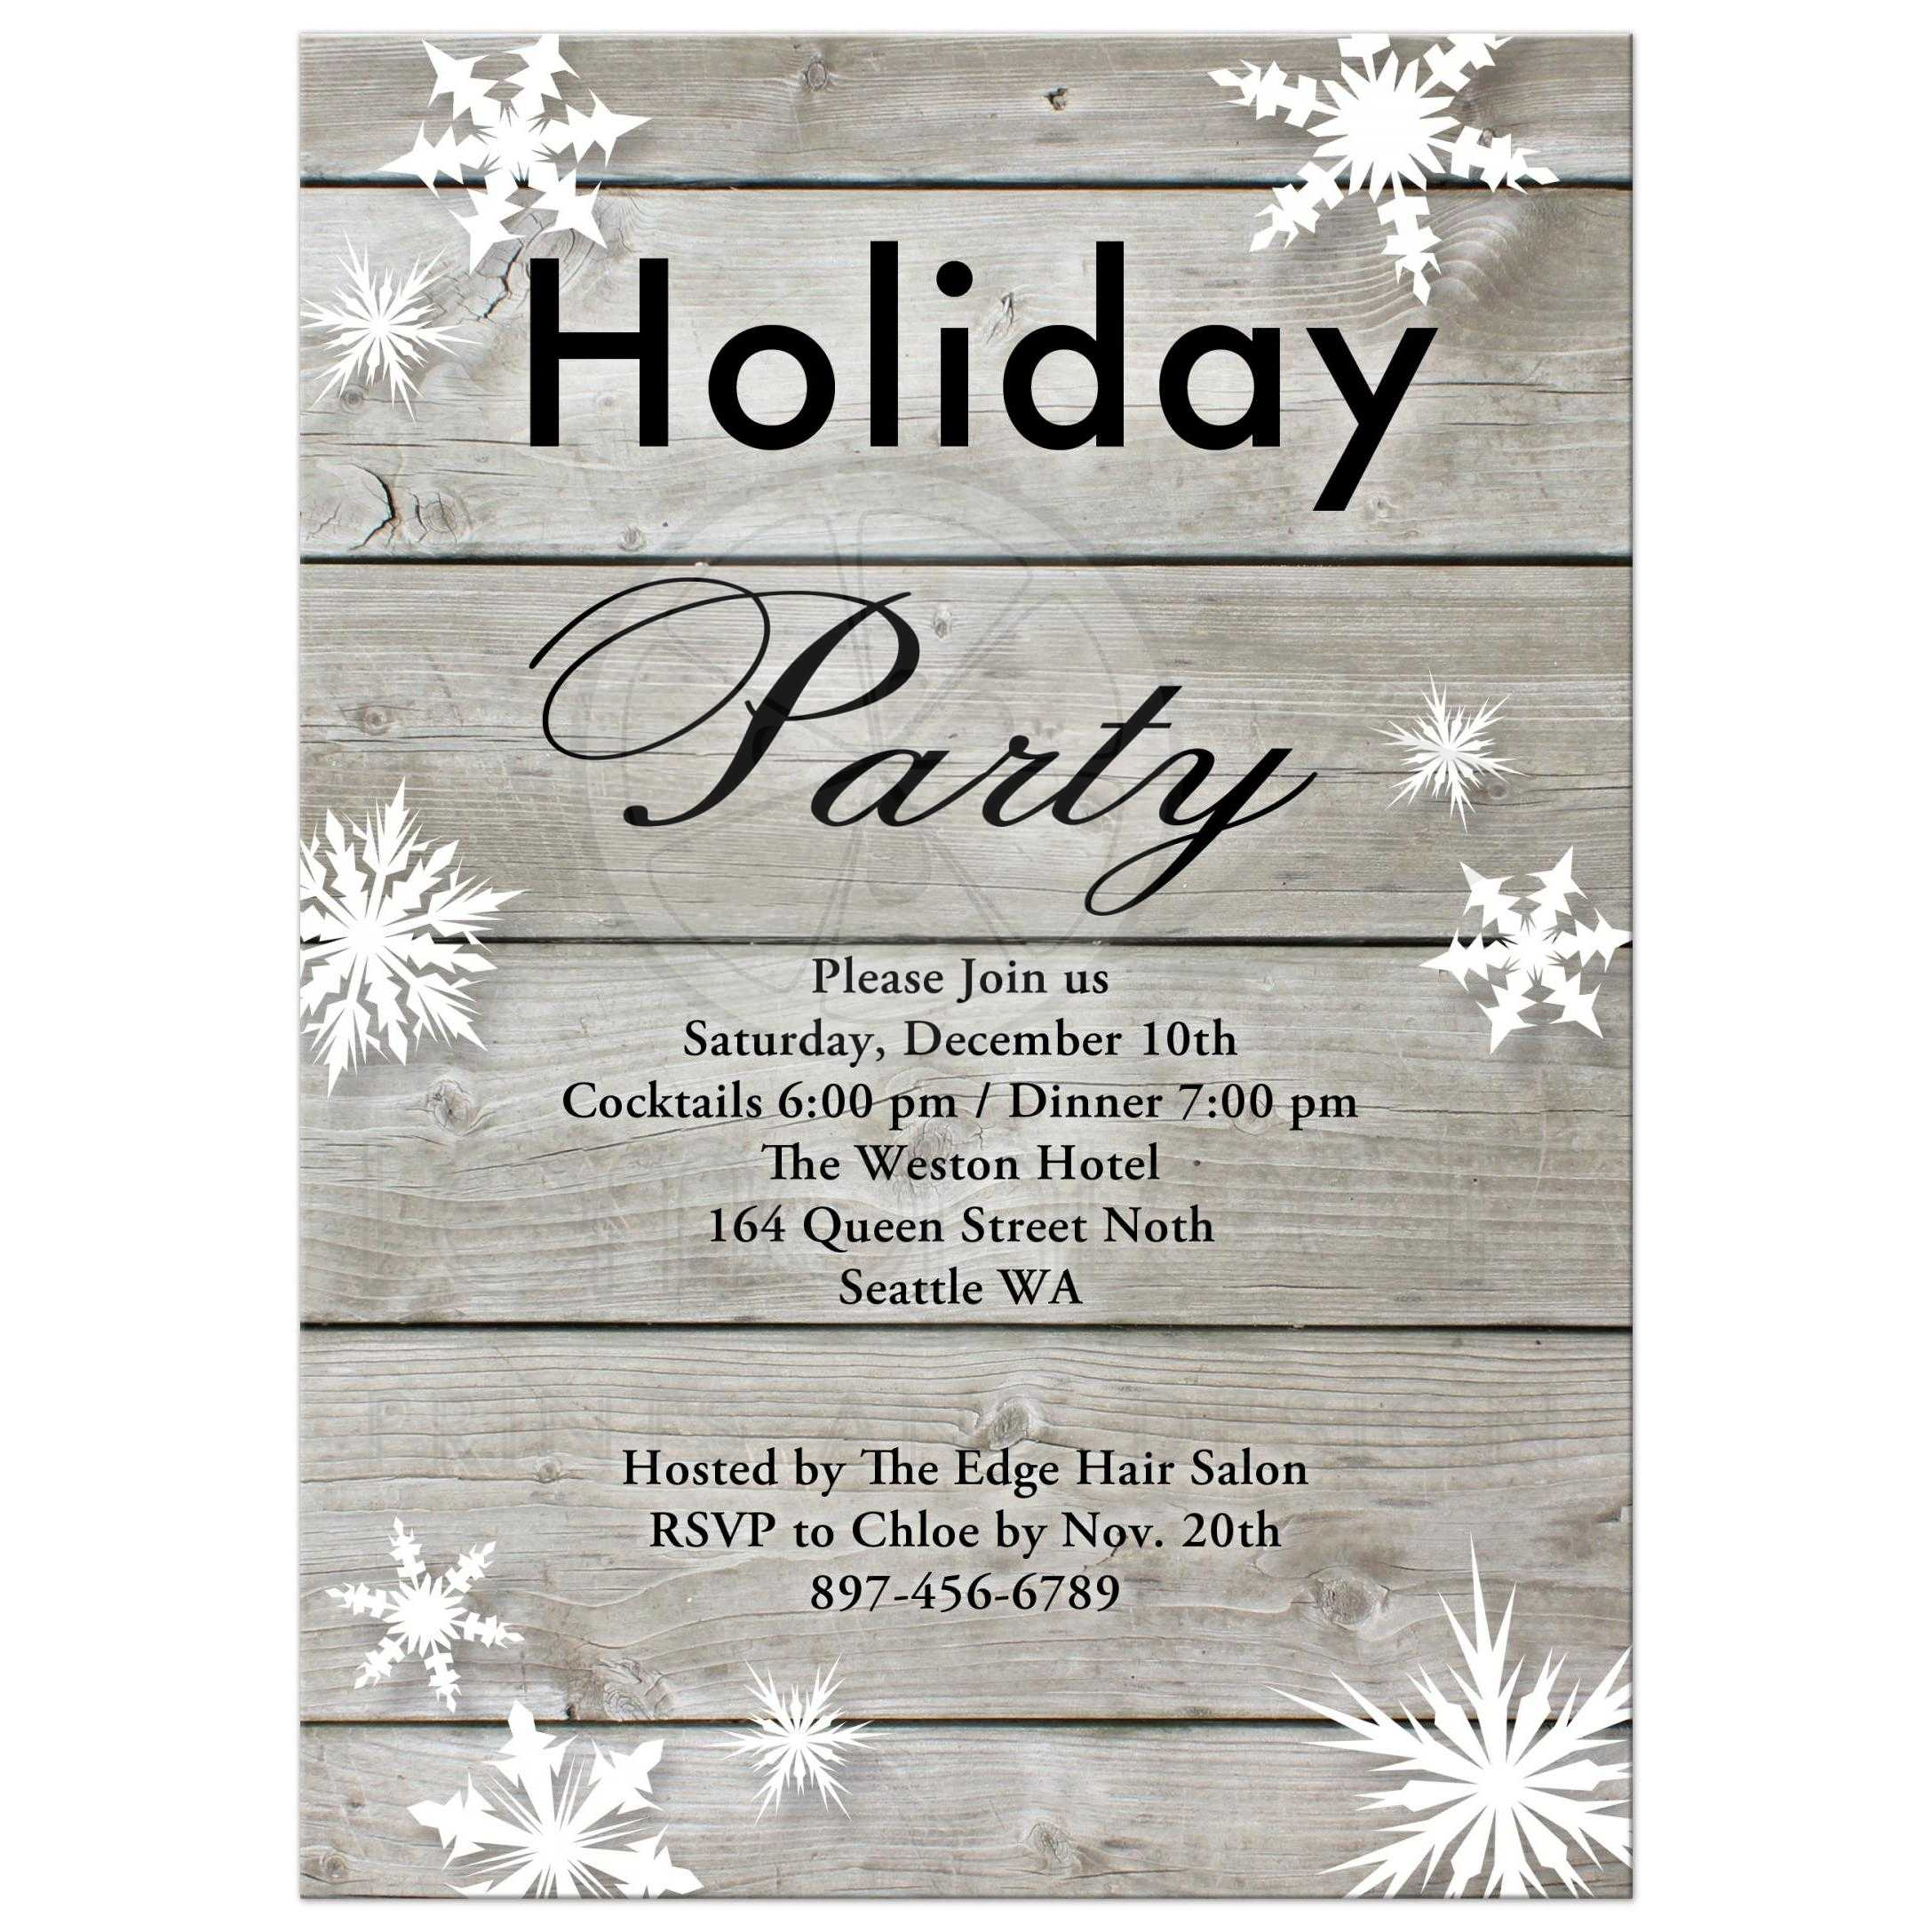 corporate holiday party invitation on barn board corporate holiday party invitation large snowflakes on a barn board background